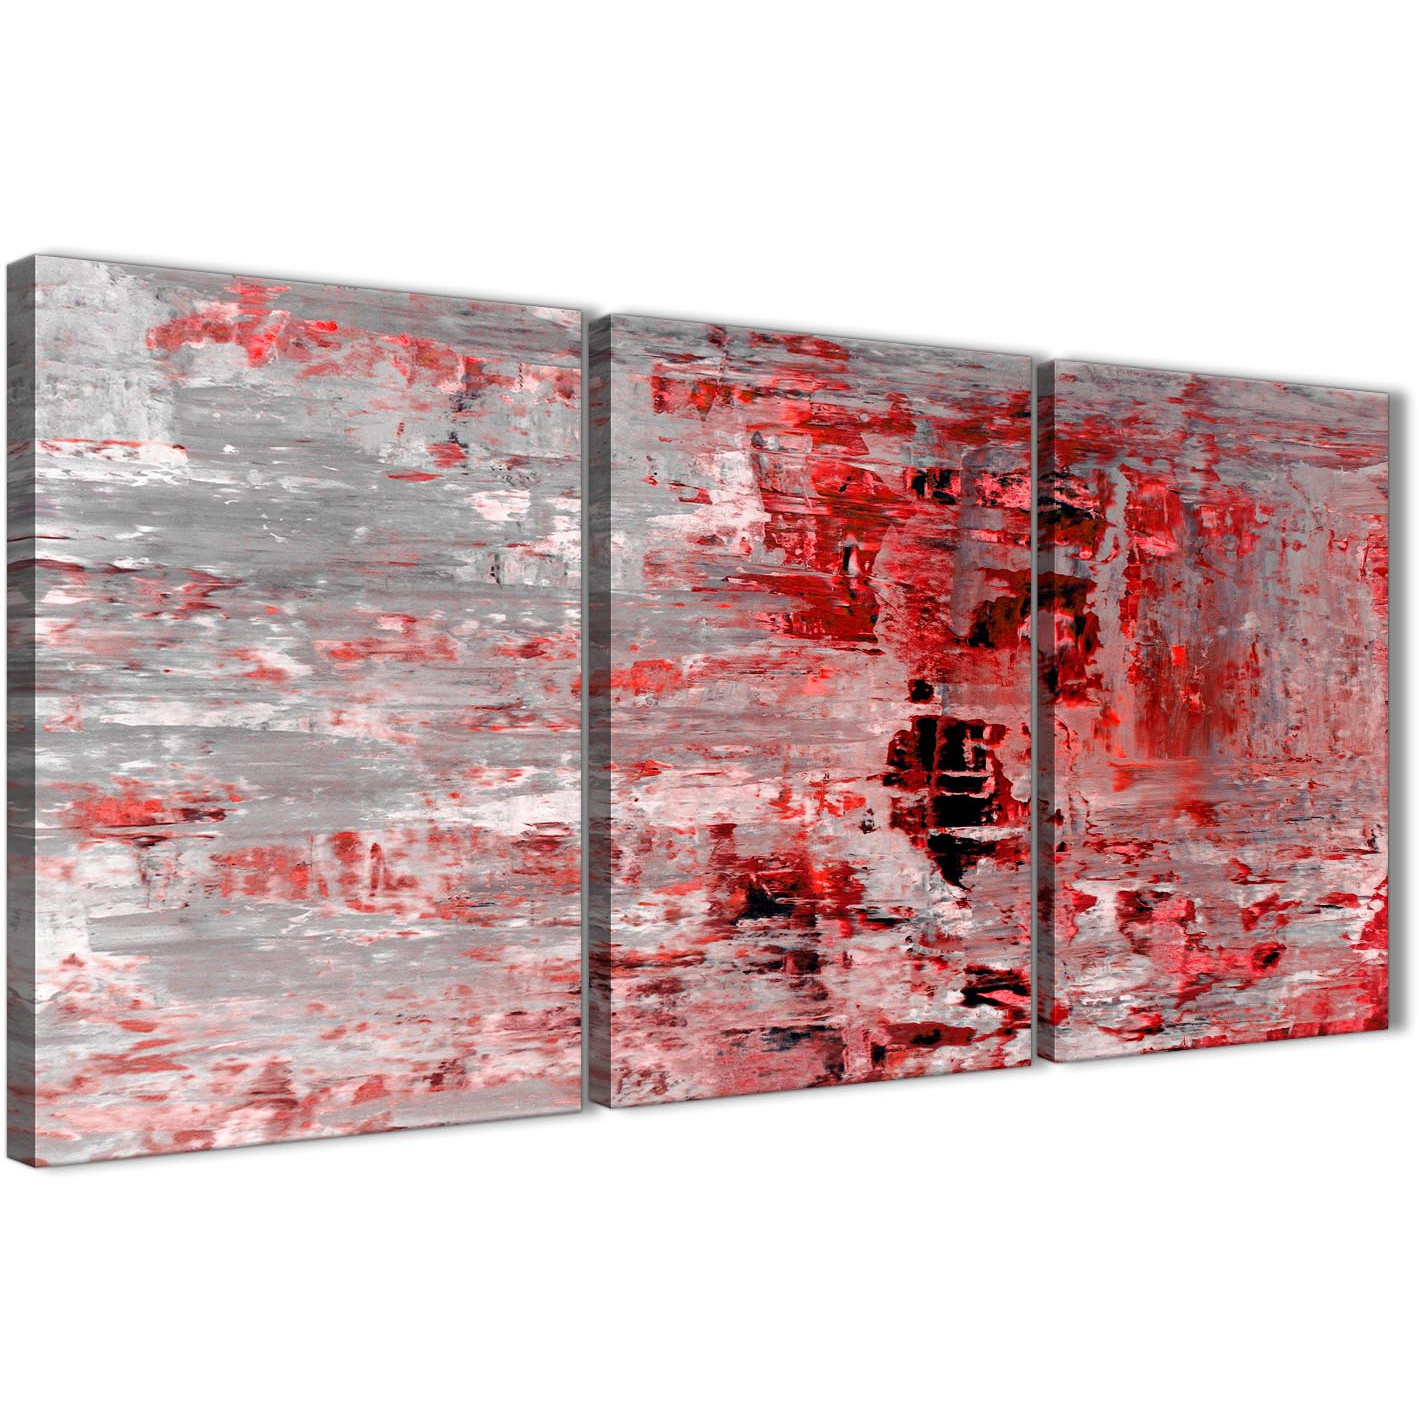 Next set of 3 panel red grey painting kitchen canvas wall art accessories abstract 3414 display gallery item 1